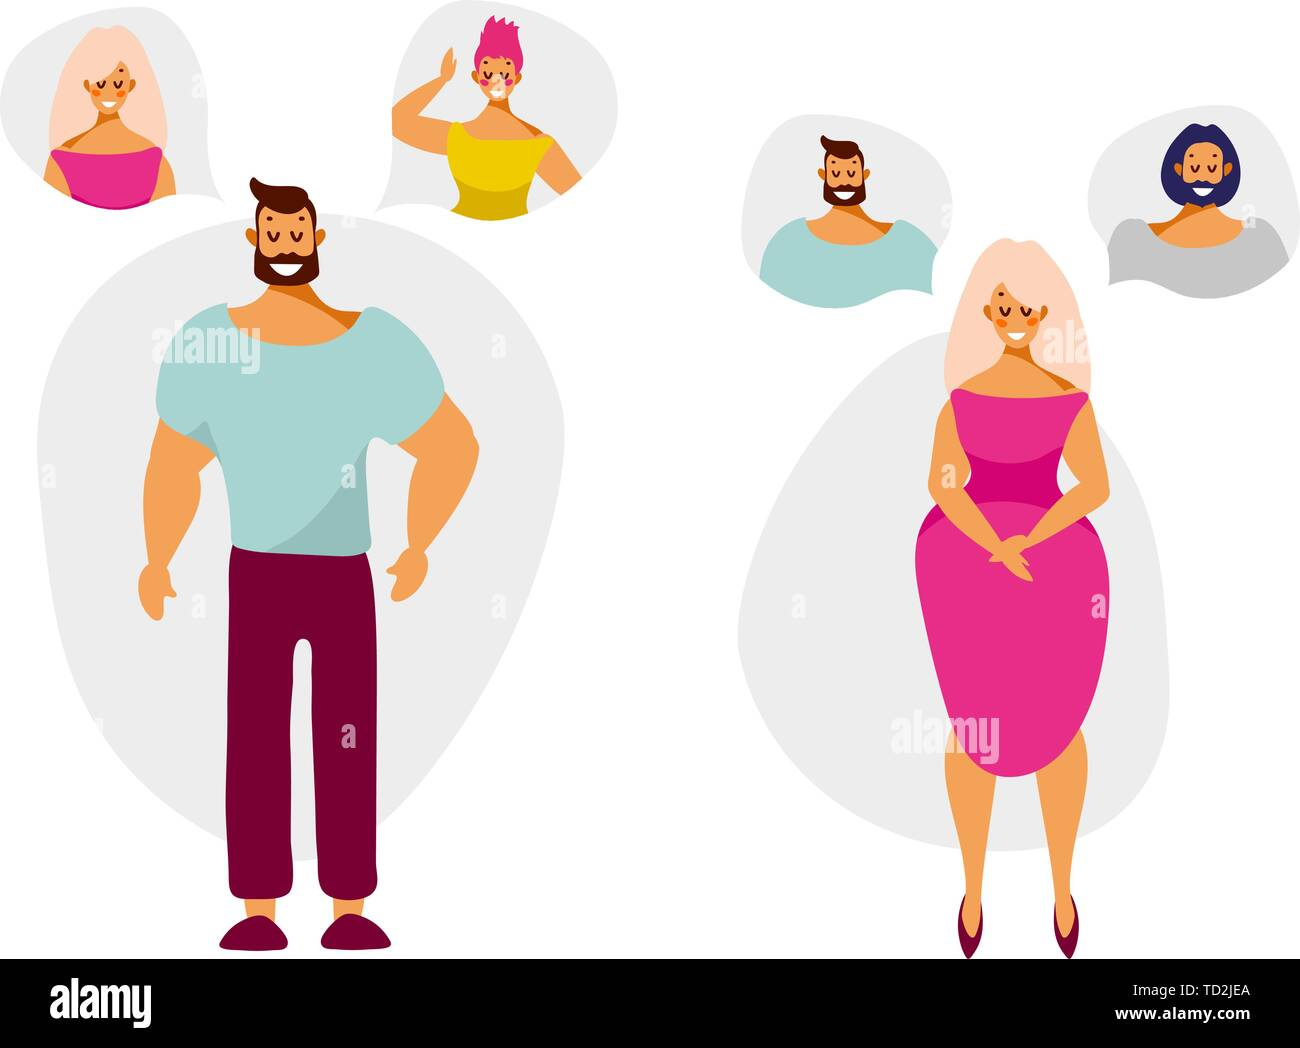 Cartoon characters man and woman think and dream of a partner. Vector illustration in flat style isolated on white background. Stock Vector